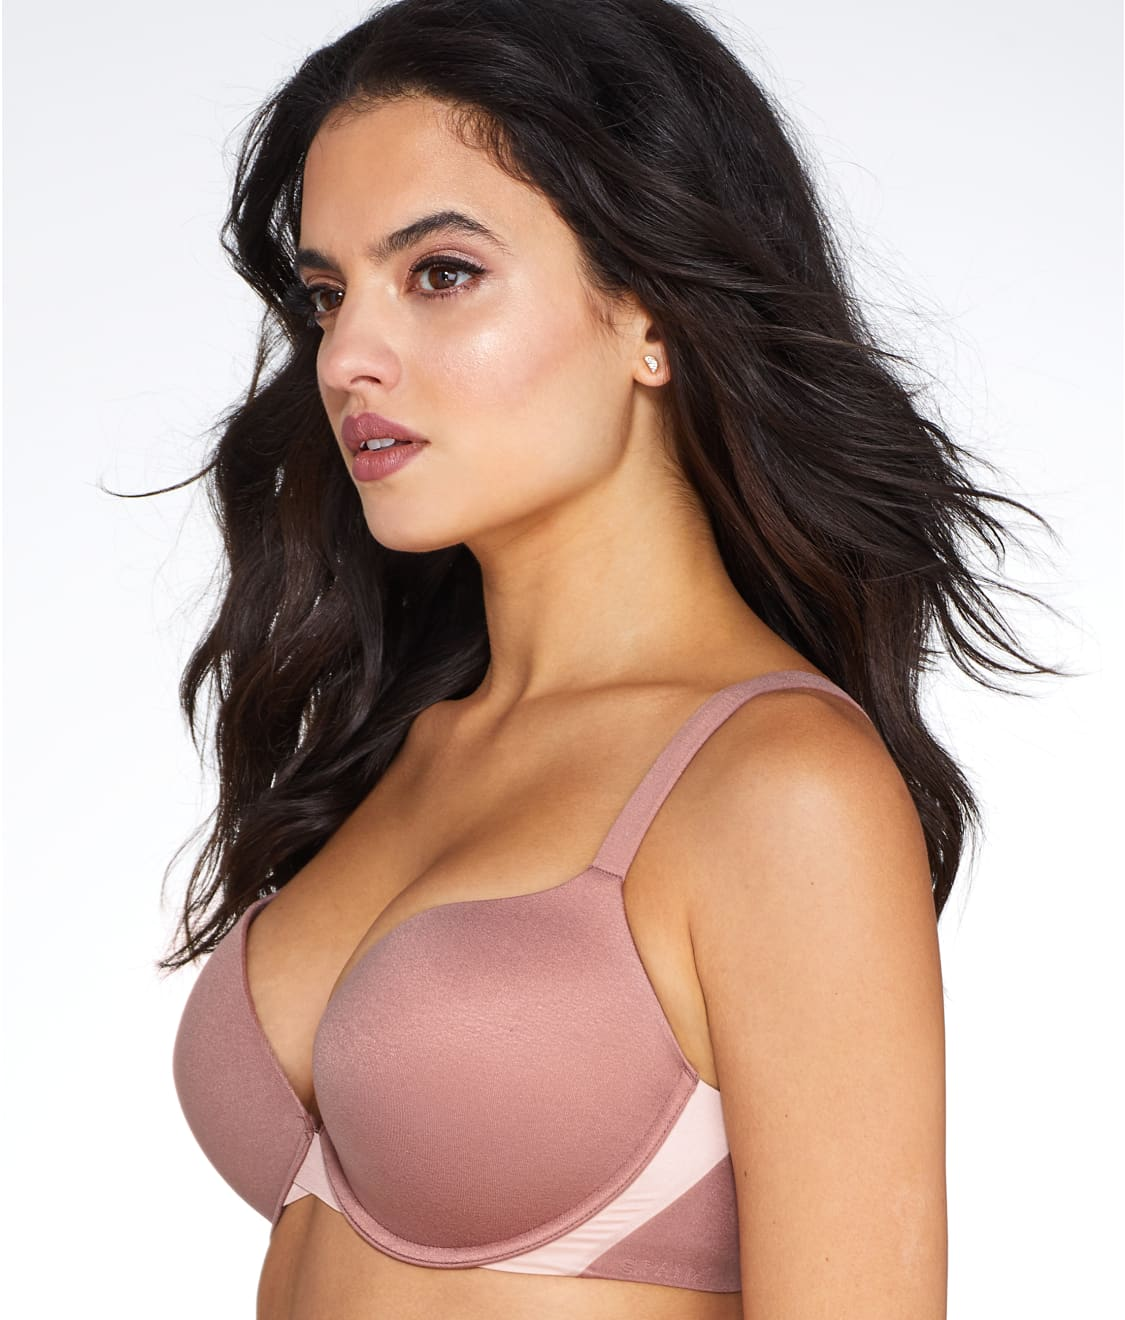 980239b693828 See Pillow Cup Signature Push-Up Plunge T-Shirt Bra in Cocoa Blush